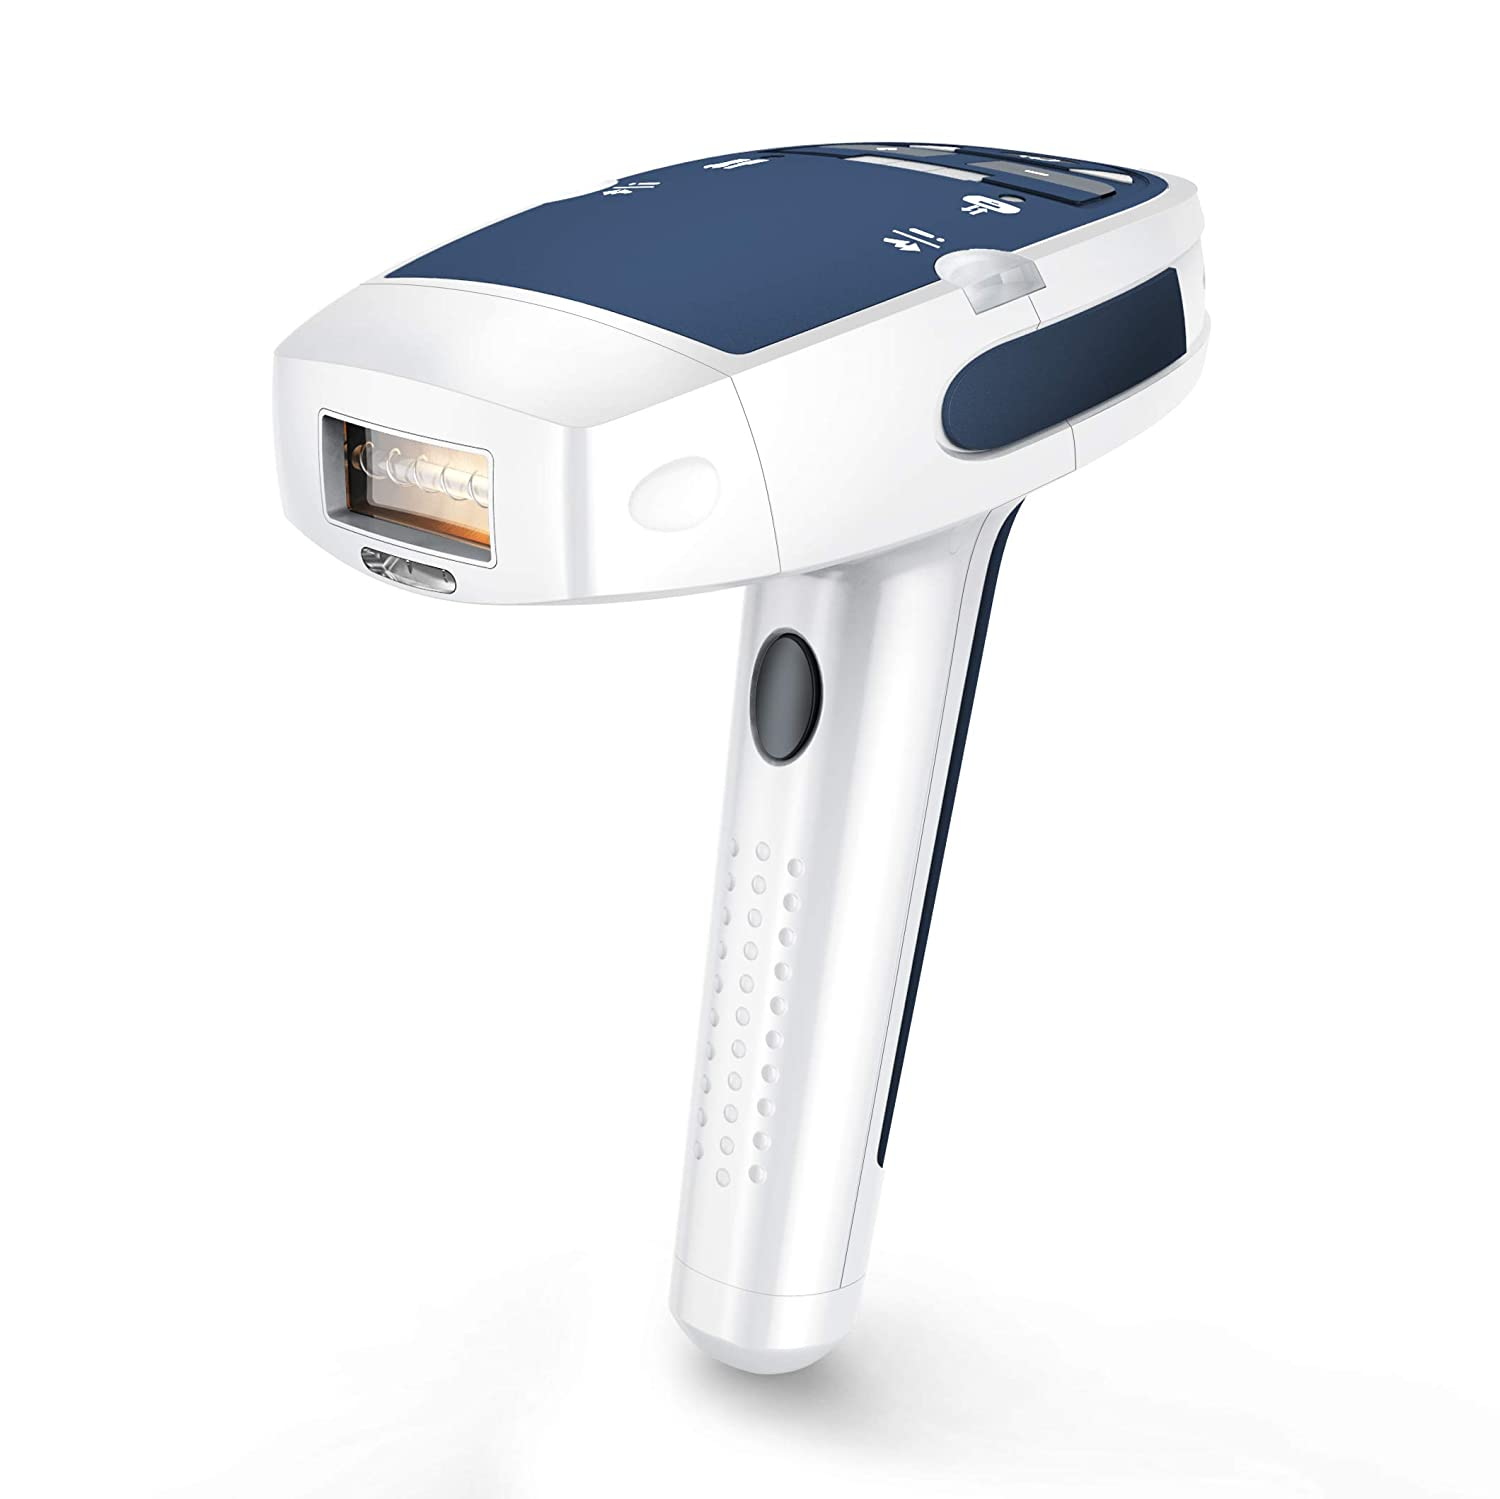 LIOKEN IPL Hair Removal System, Painless Permanent IPL Hair Removal Device for Women & Man, 5 Levels for Different Skin, 300000 Flashes Professional Light Epilator